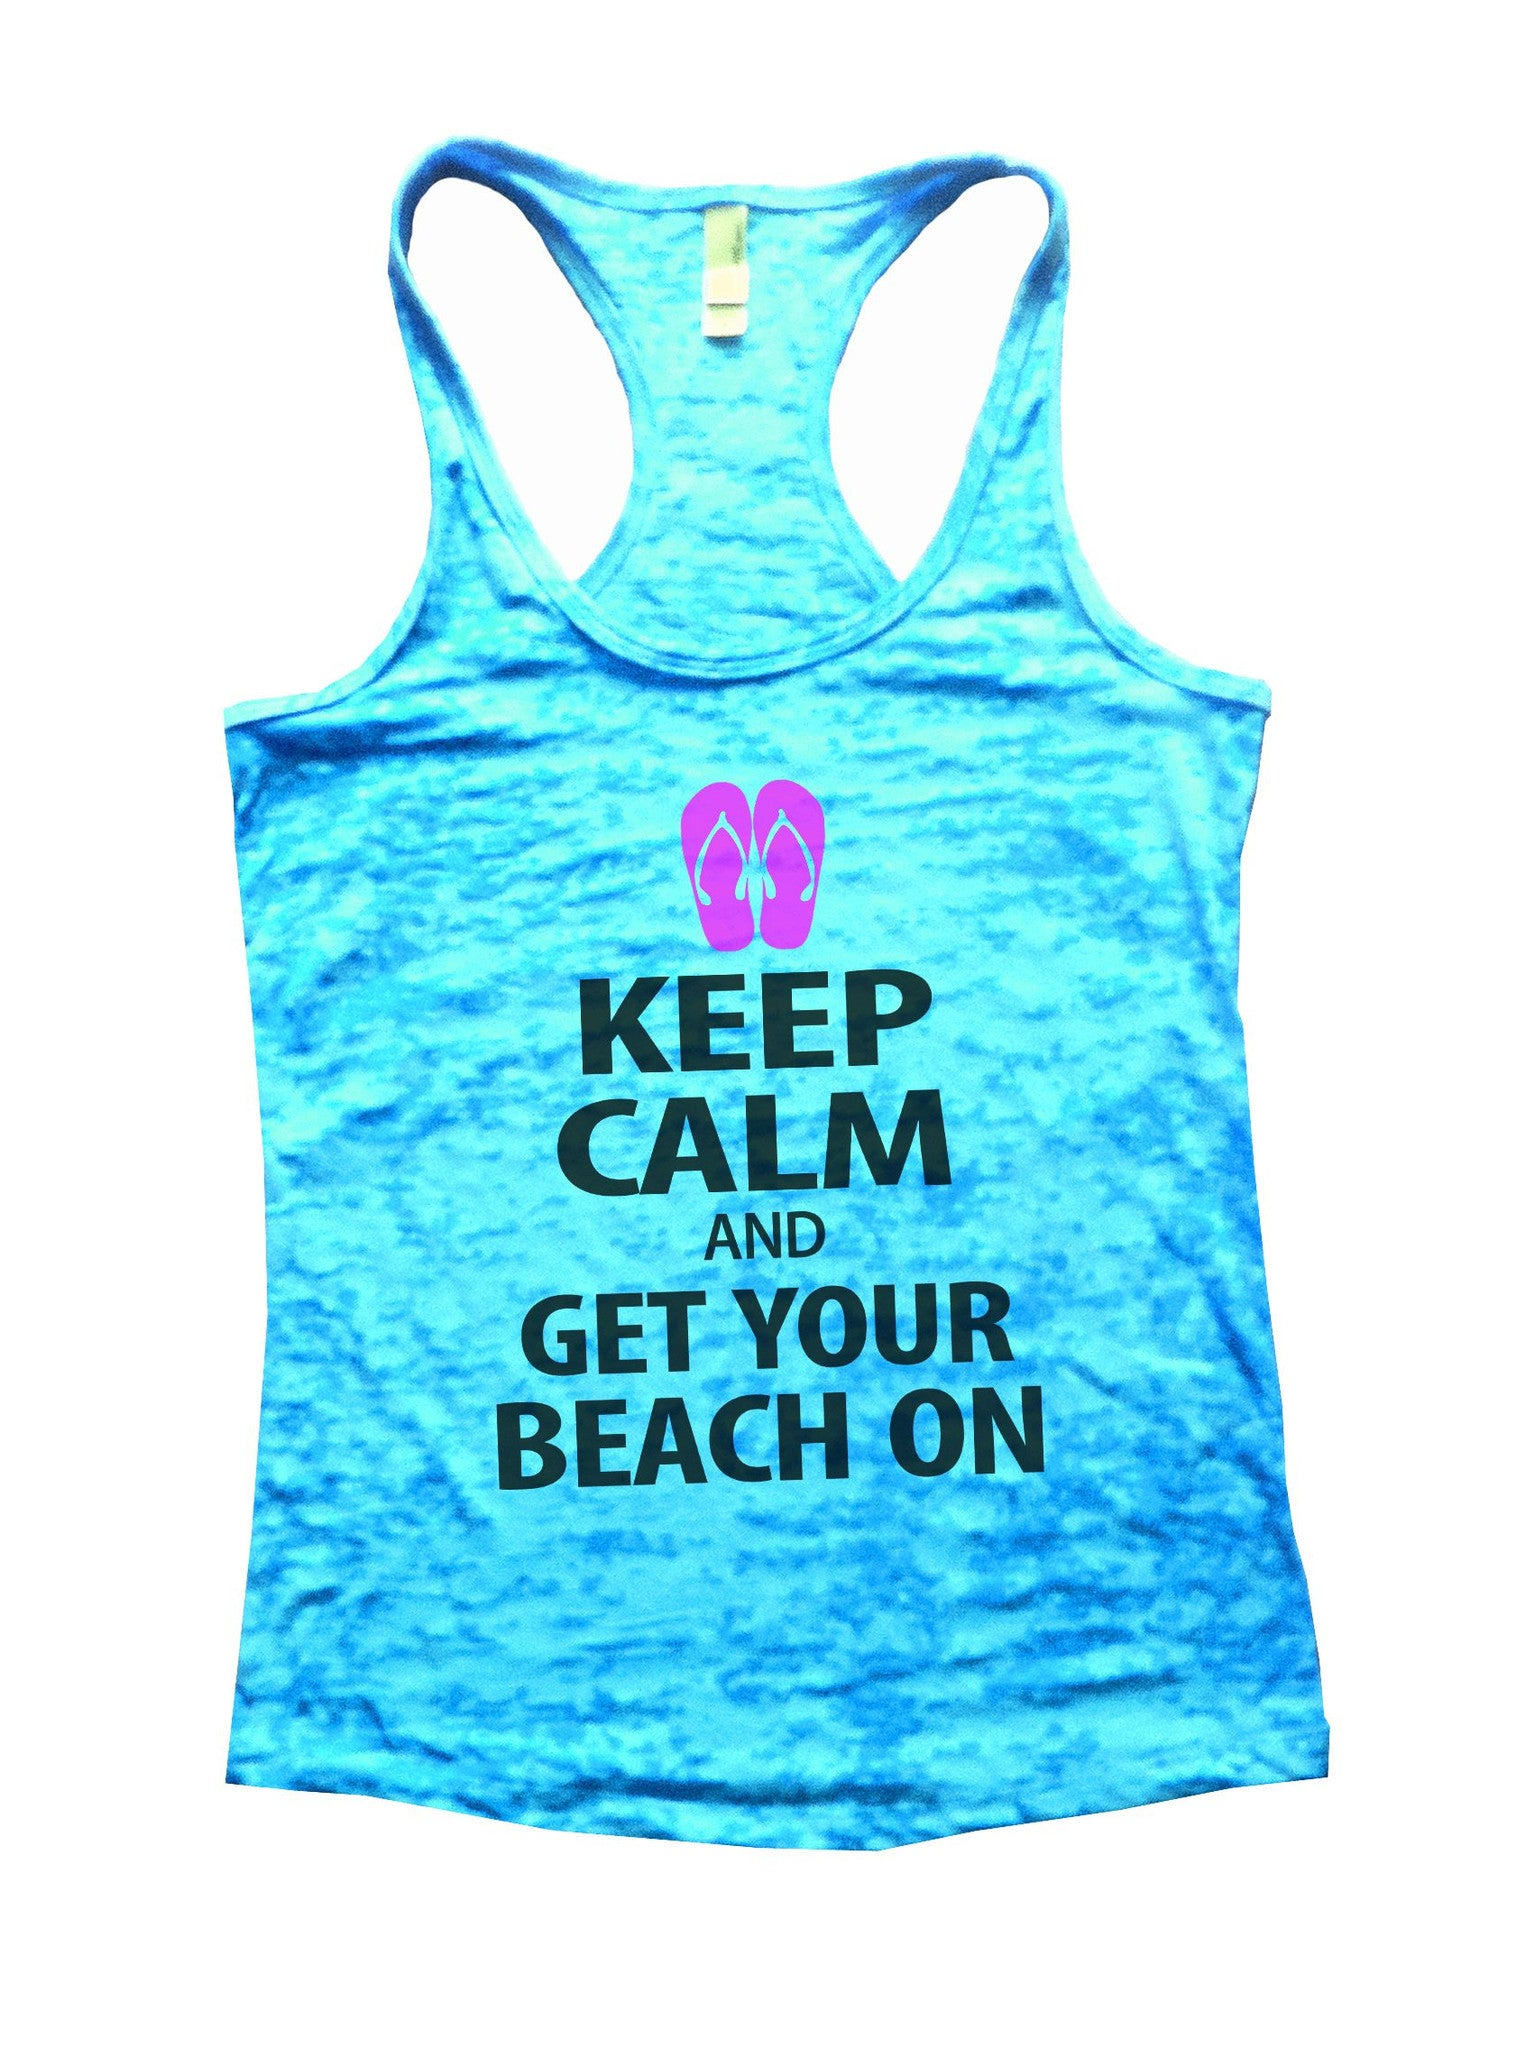 Keep Calm And Get Your Beach On Burnout Tank Top By BurnoutTankTops.com - 550 - Funny Shirts Tank Tops Burnouts and Triblends  - 4